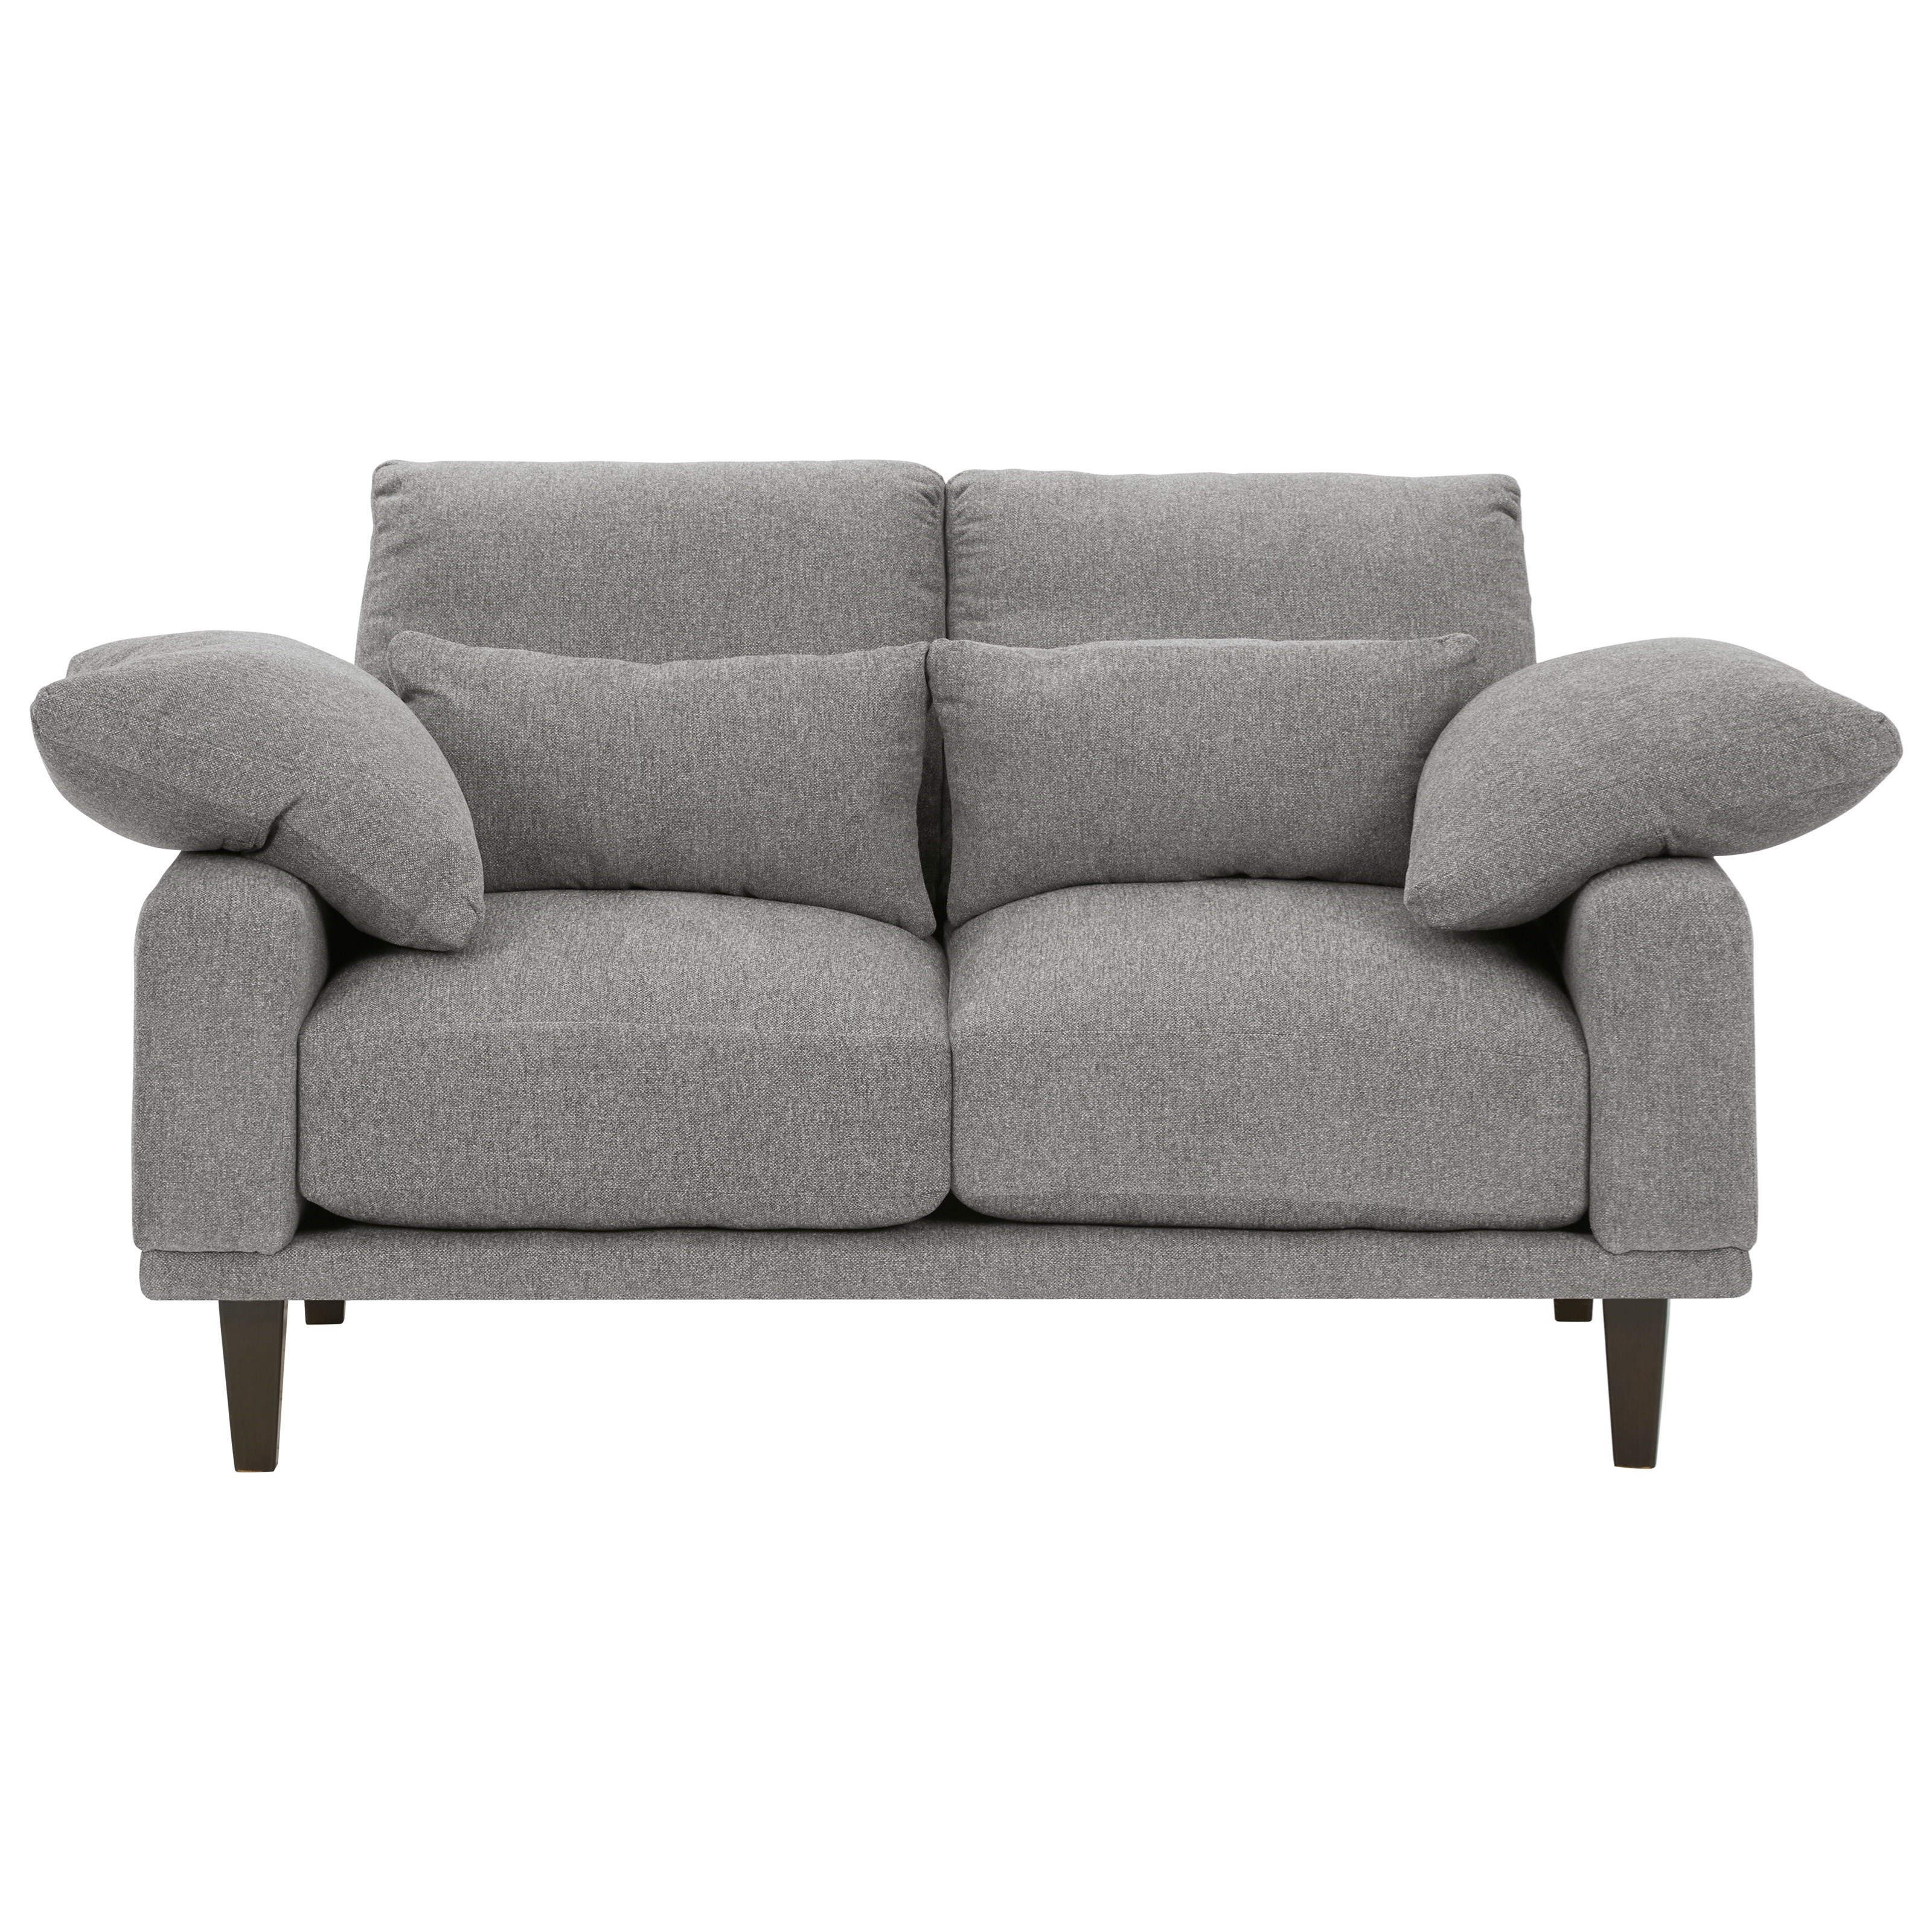 Baneway Loveseat by Signature Design by Ashley at Lapeer Furniture & Mattress Center